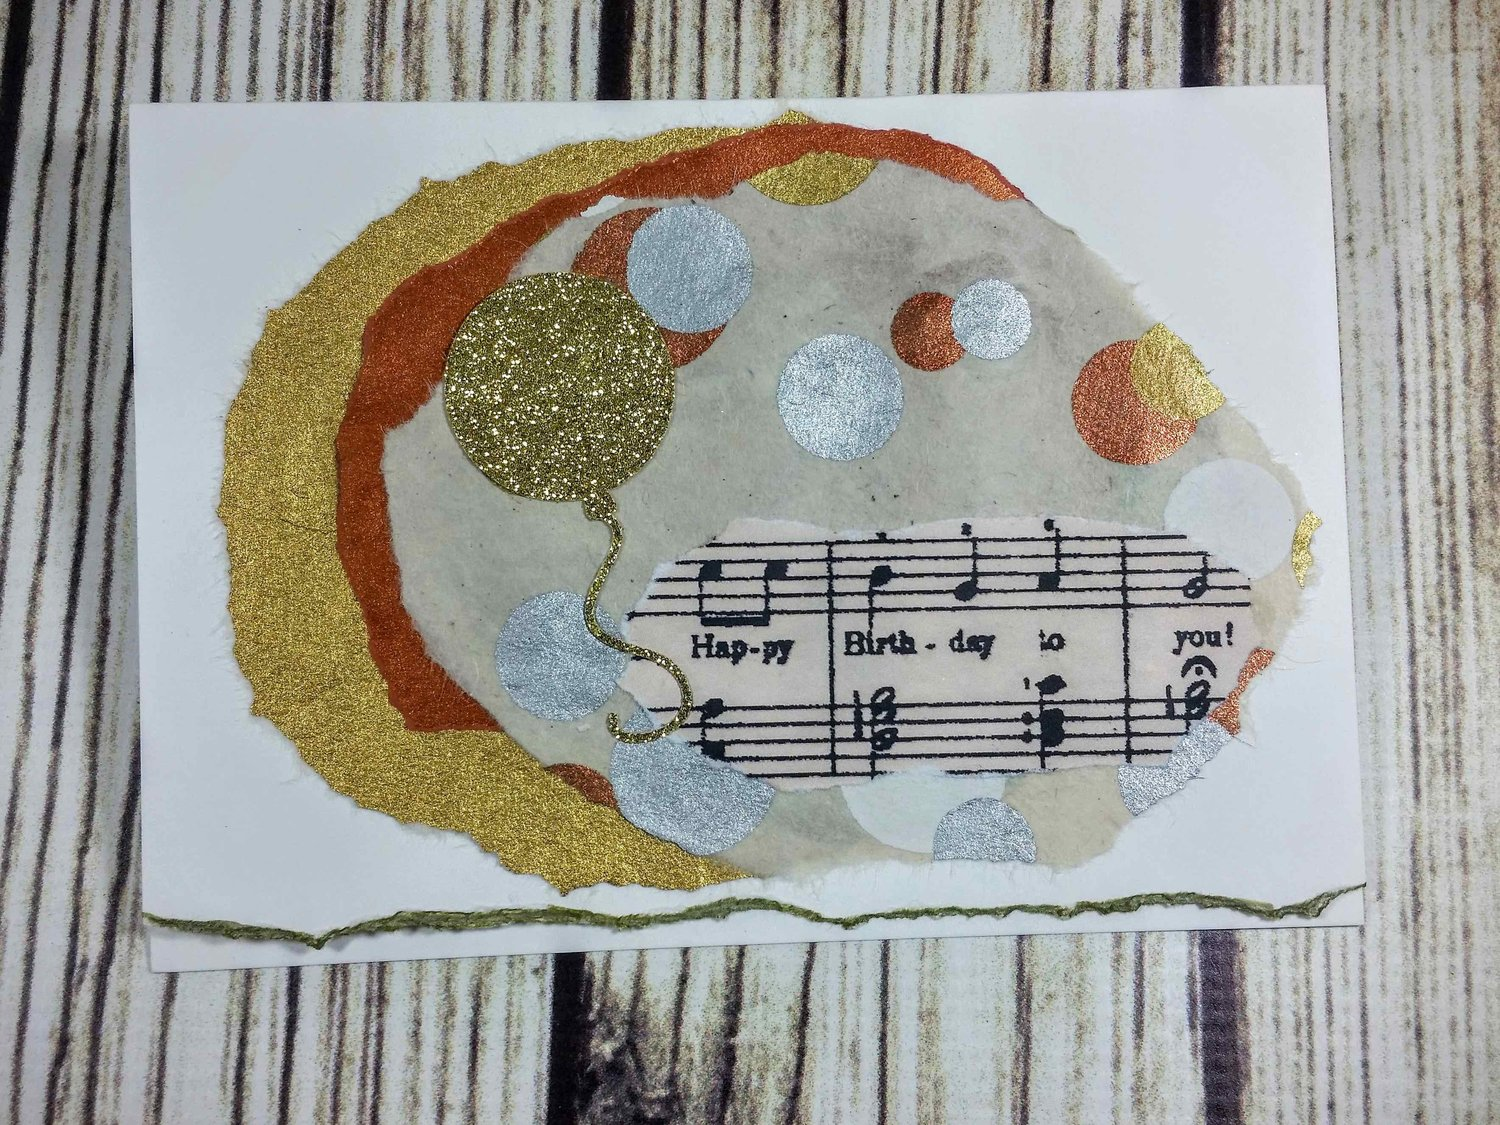 Happy birthday to you balloons music gold birthday greeting card happy birthday to you balloons music gold birthday greeting card kristyandbryce Gallery